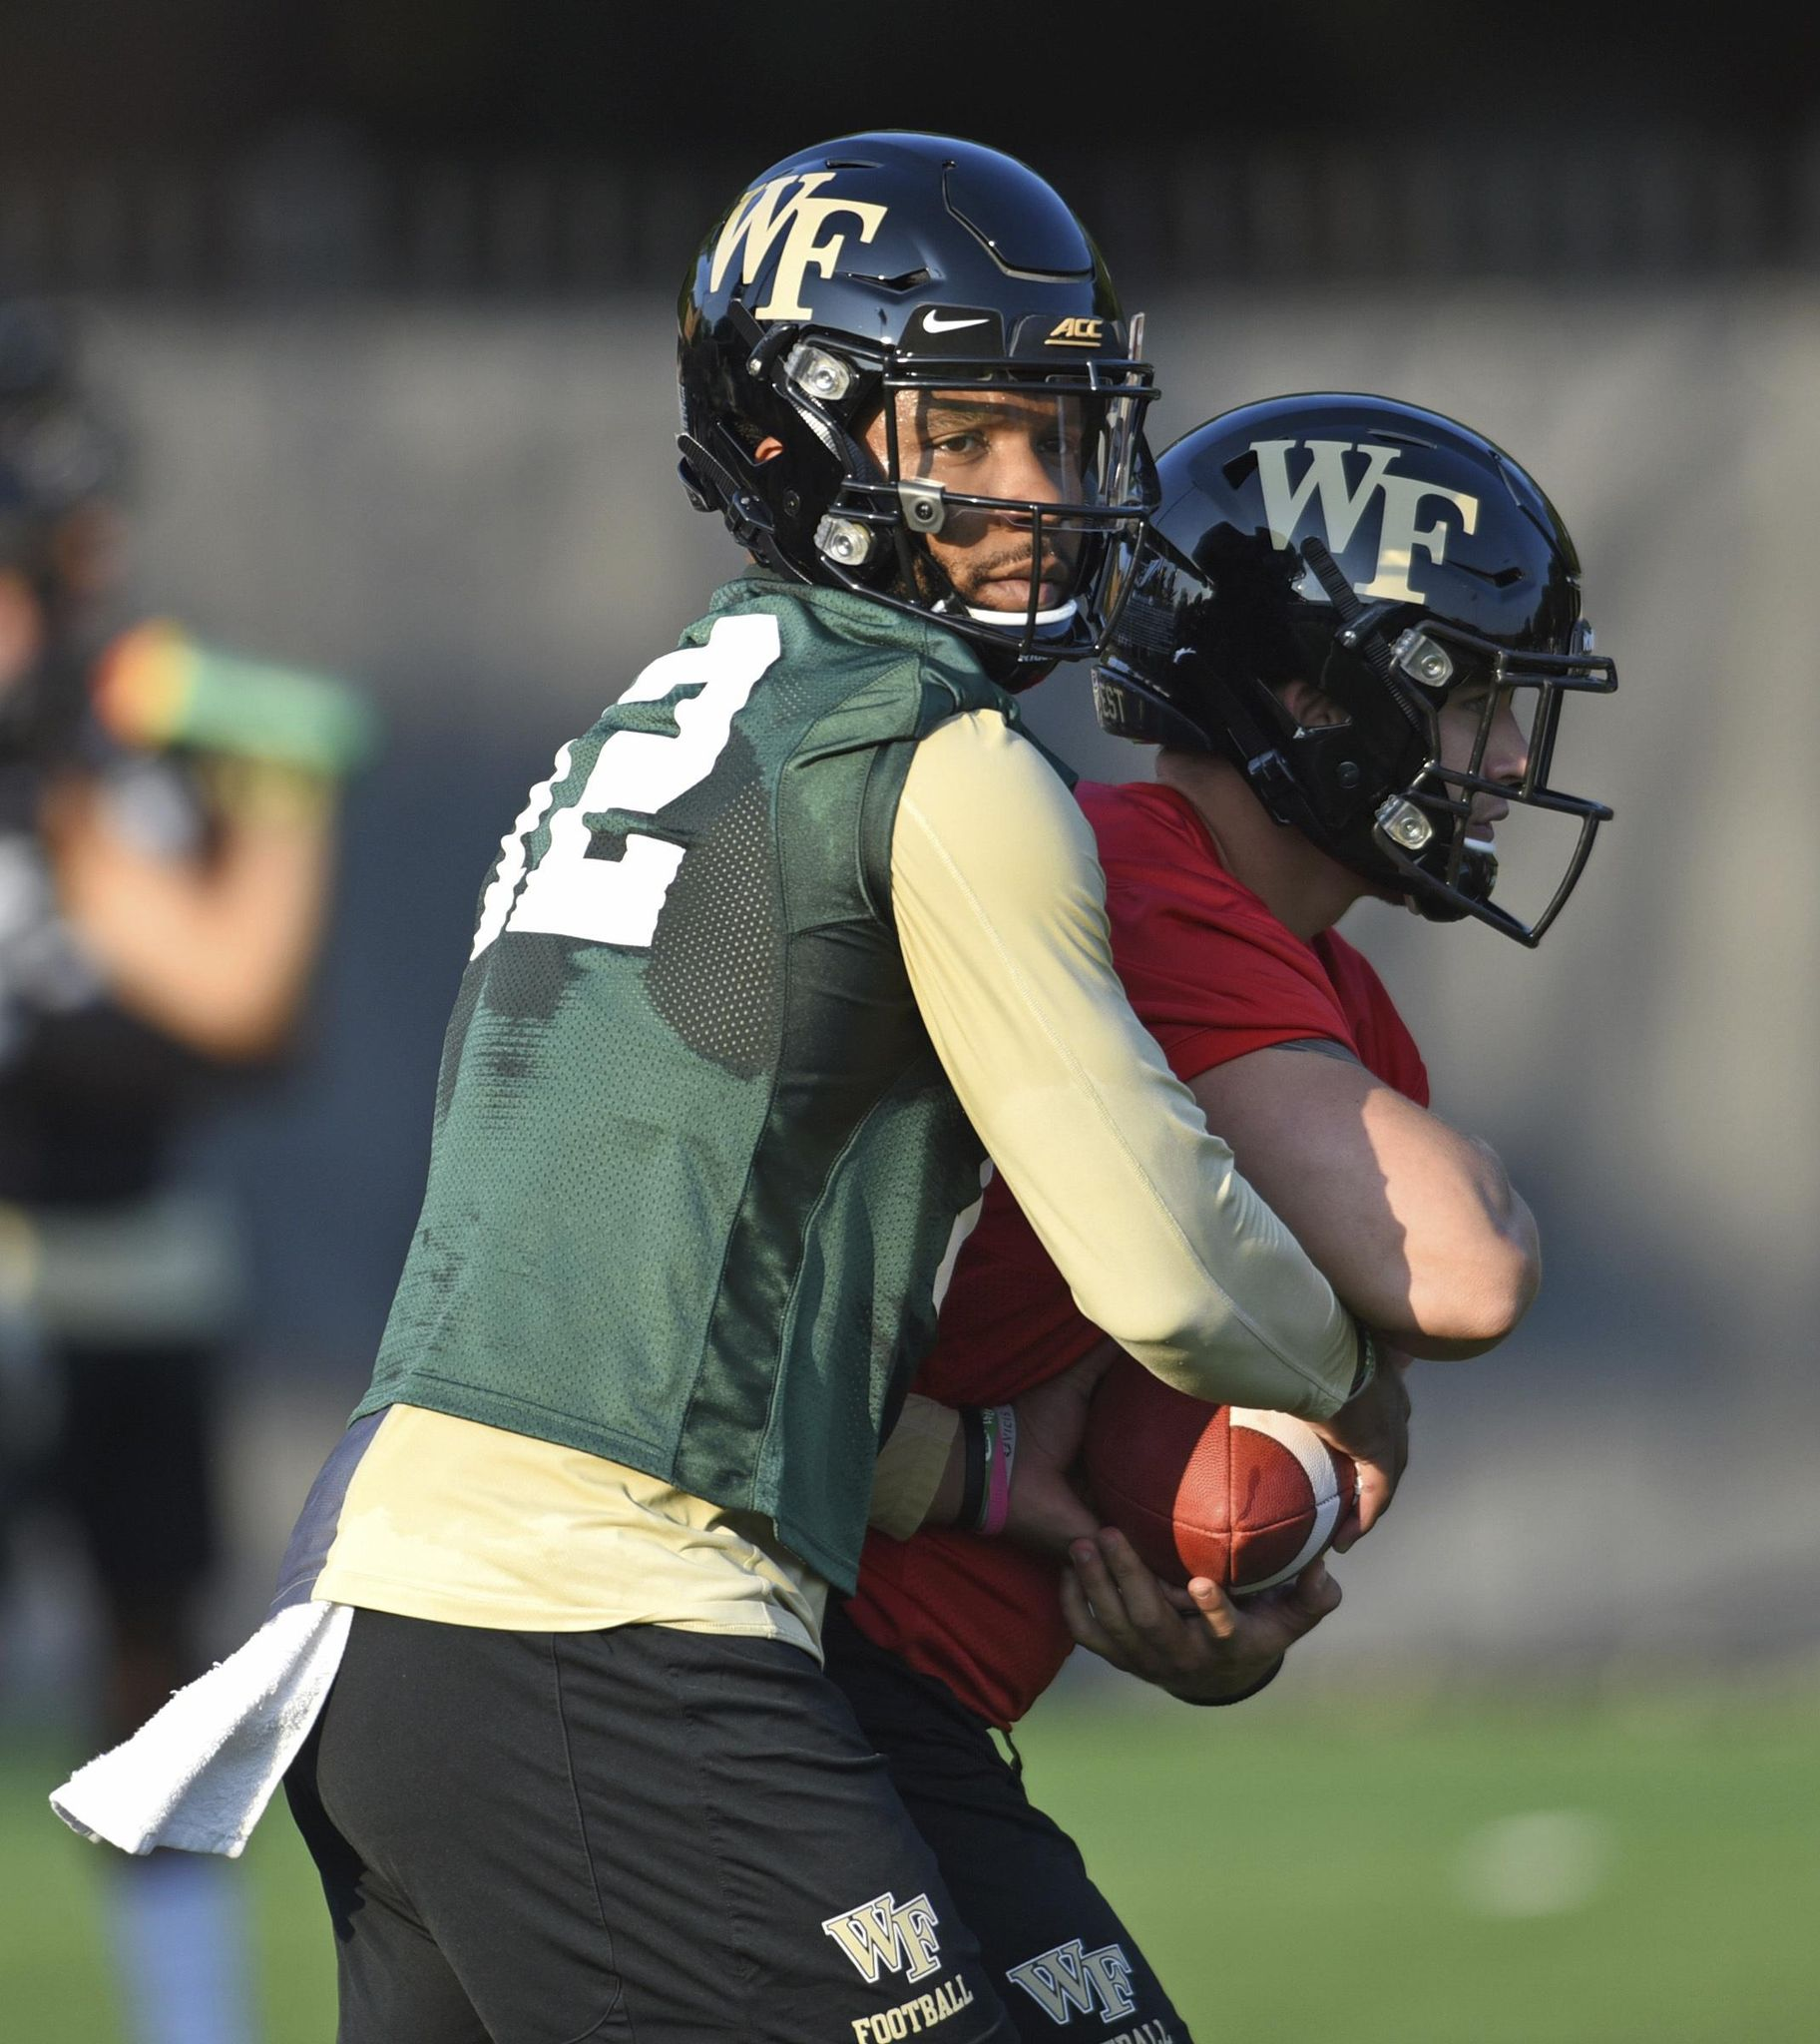 Wake_forest_preview_football_14143_s1824x2048